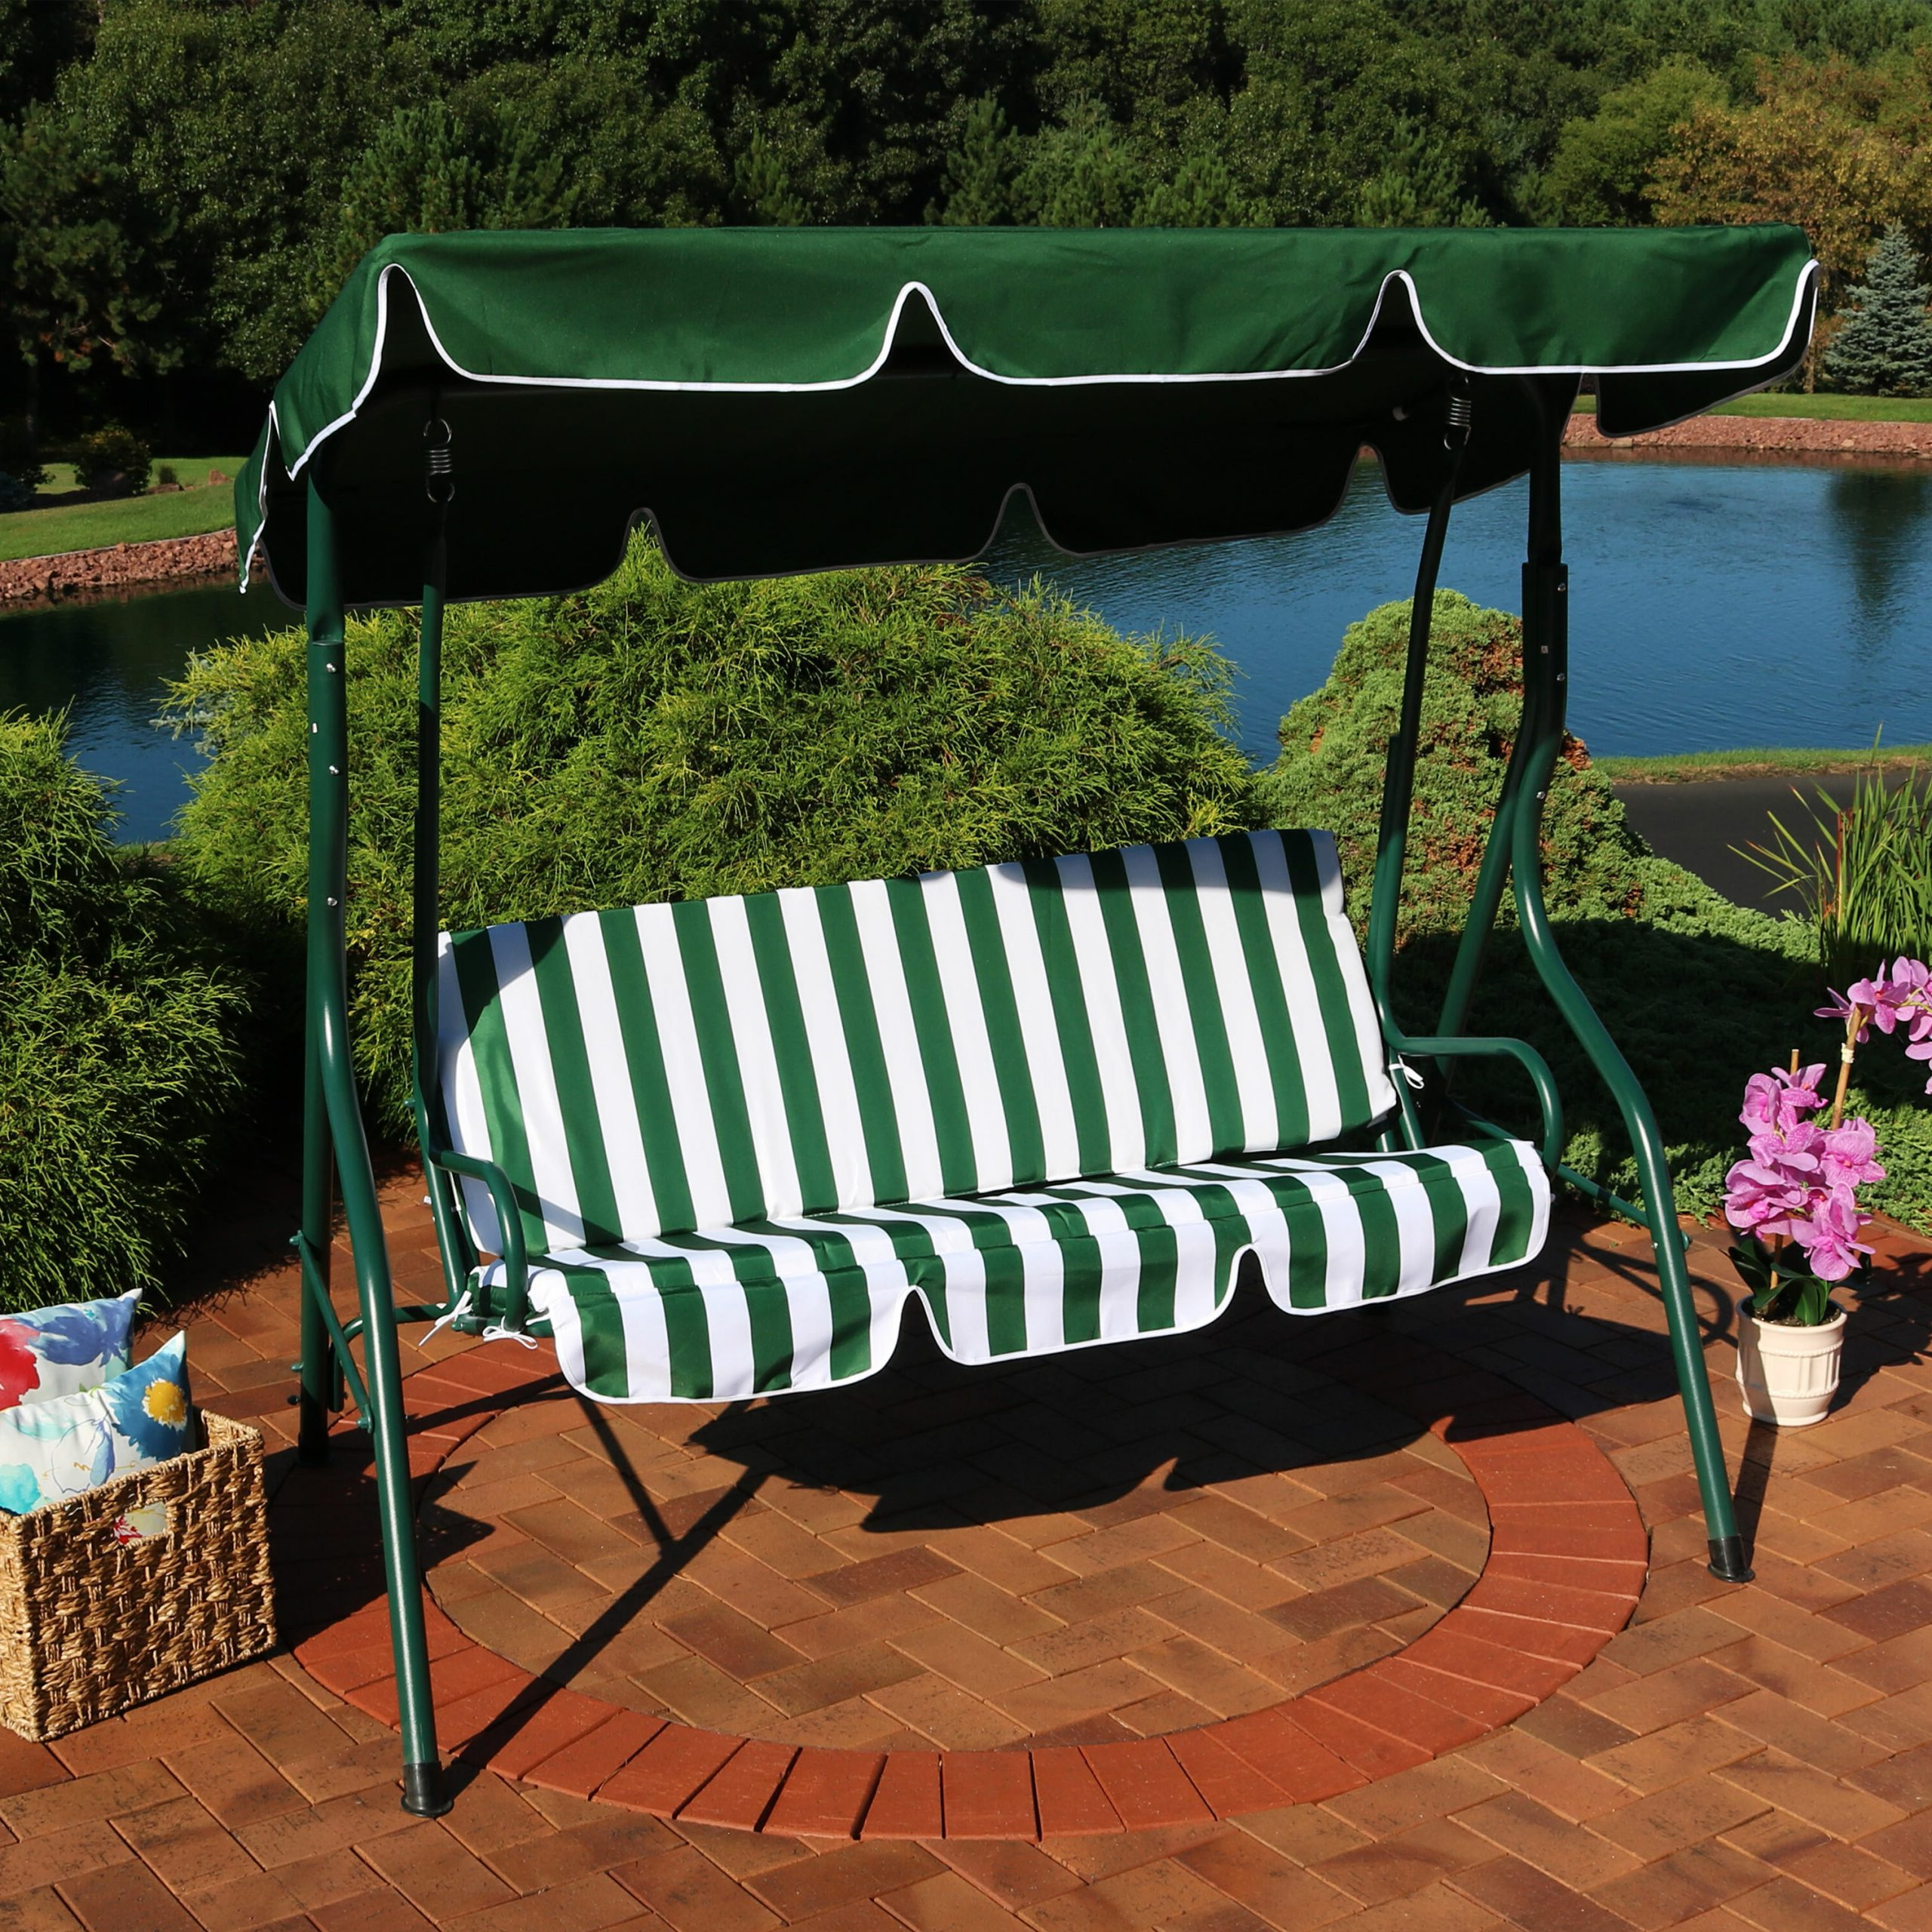 Sunseri 3 Person Striped Seat Outdoor Canopy Patio Porch Swing With Stand Regarding Favorite 3 Person Outdoor Porch Swings With Stand (View 15 of 25)